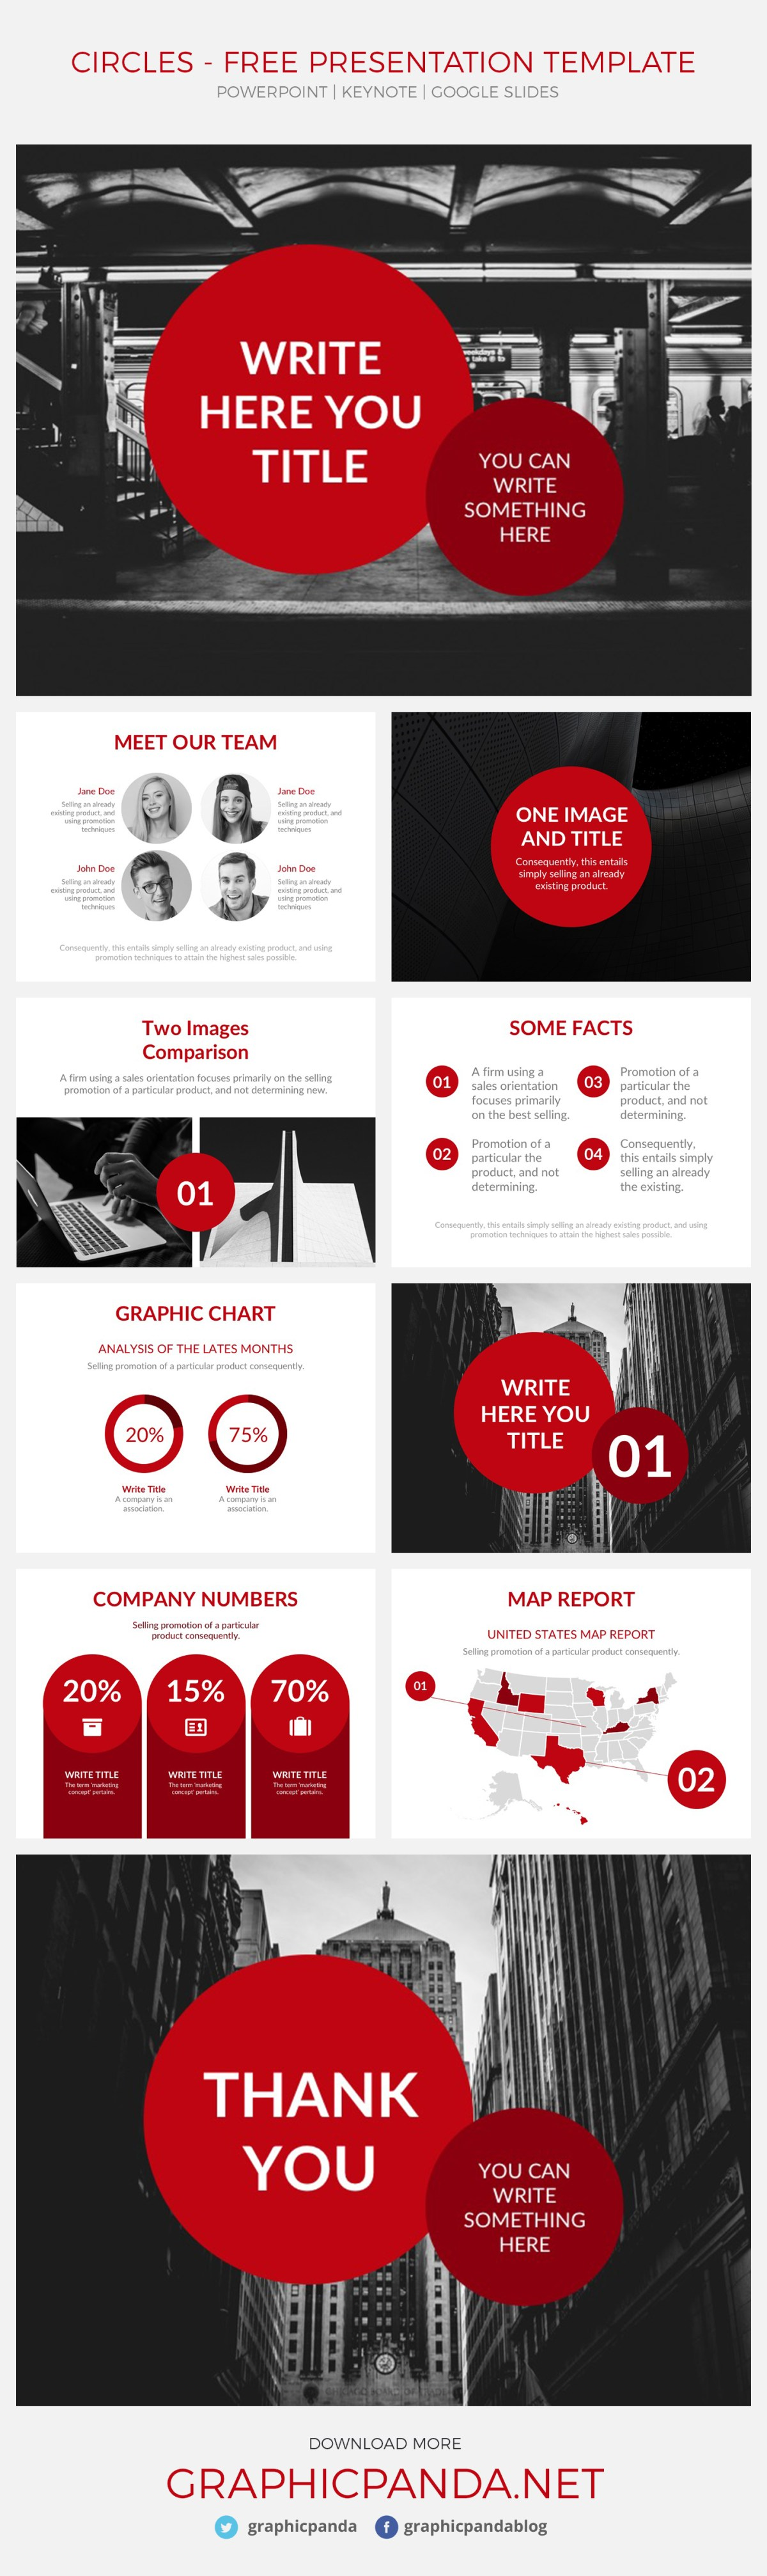 Creating a presentation is an essential part of the business world. Not only do you have to present all your data, but you also have to make it creatively professional. The goal should be making your presentation come to life and be its own. Without you even having to explain anything. Although, you should elaborate just to make sure your investors, business partners, clients, the manager, or executive professionals capture every detail. If your presentation can stand for itself, then you know the creation was a success, just like the presentation itself.